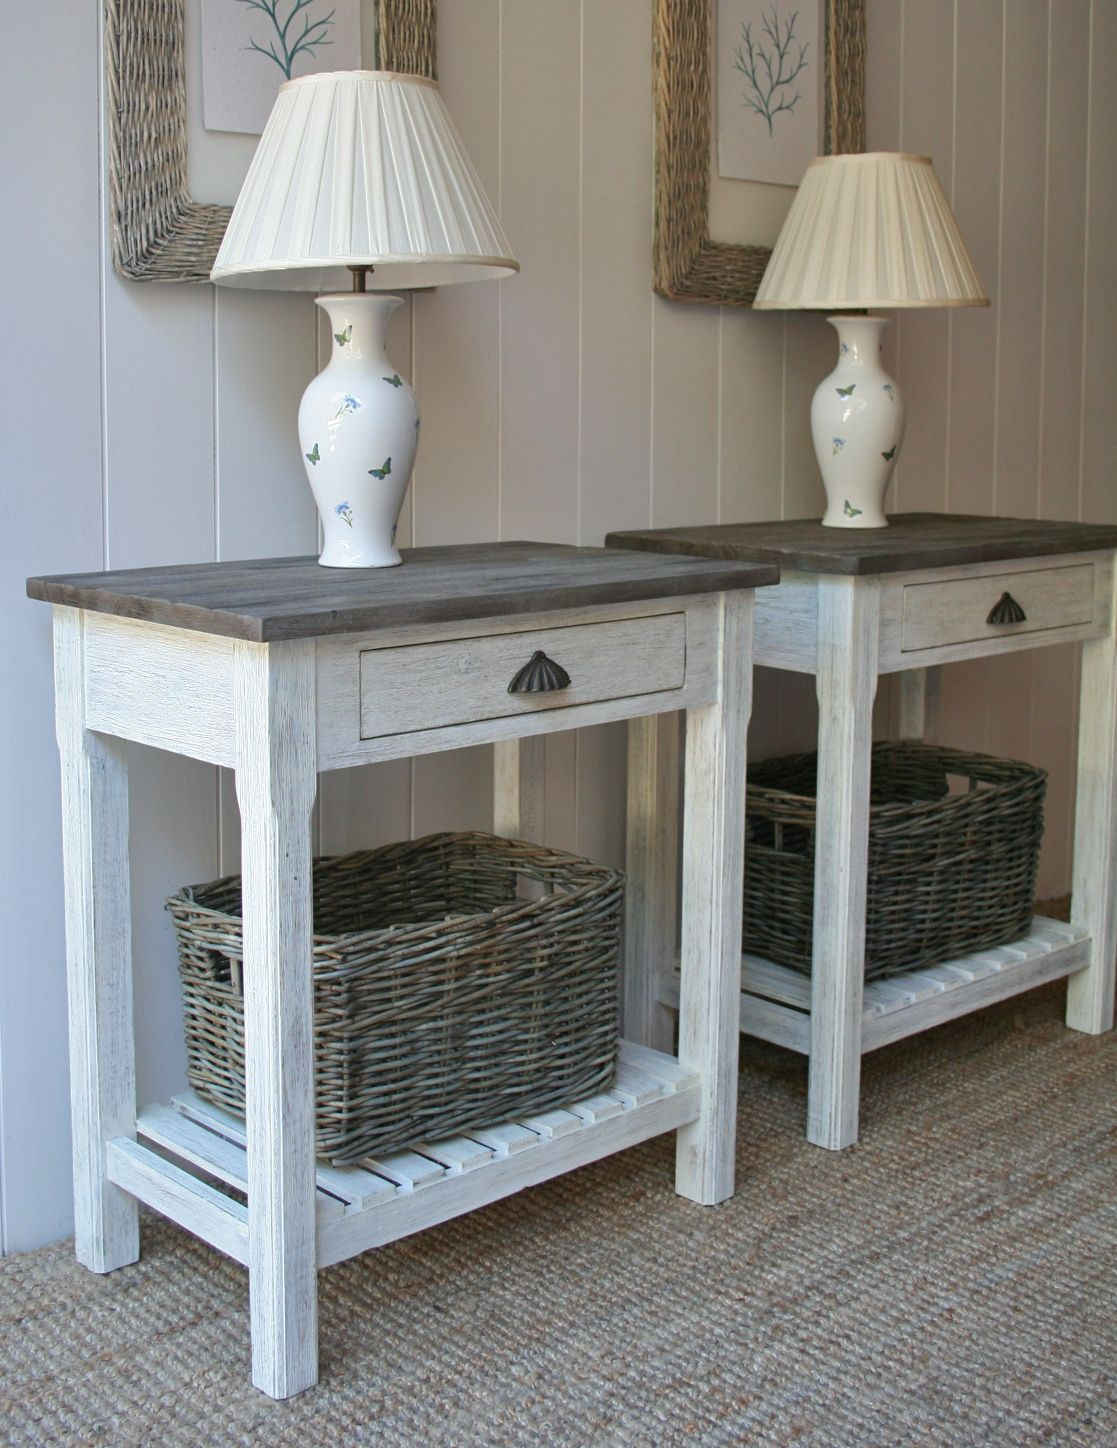 Best Vintage White End Tables With Woven Twig Baskets To Use At 400 x 300